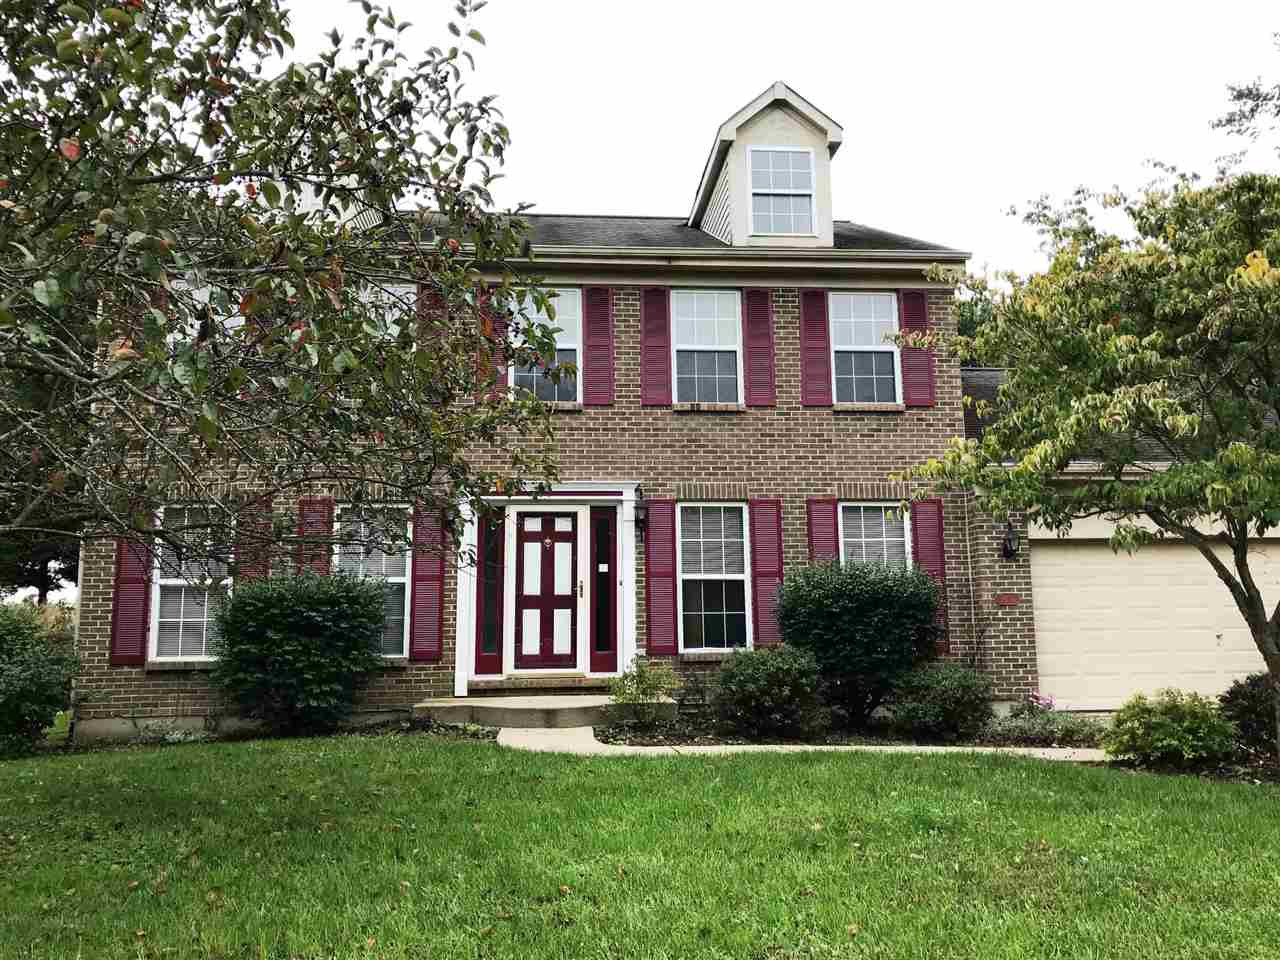 Photo 1 for 7456 Big Horn Ct. Burlington, KY 41005